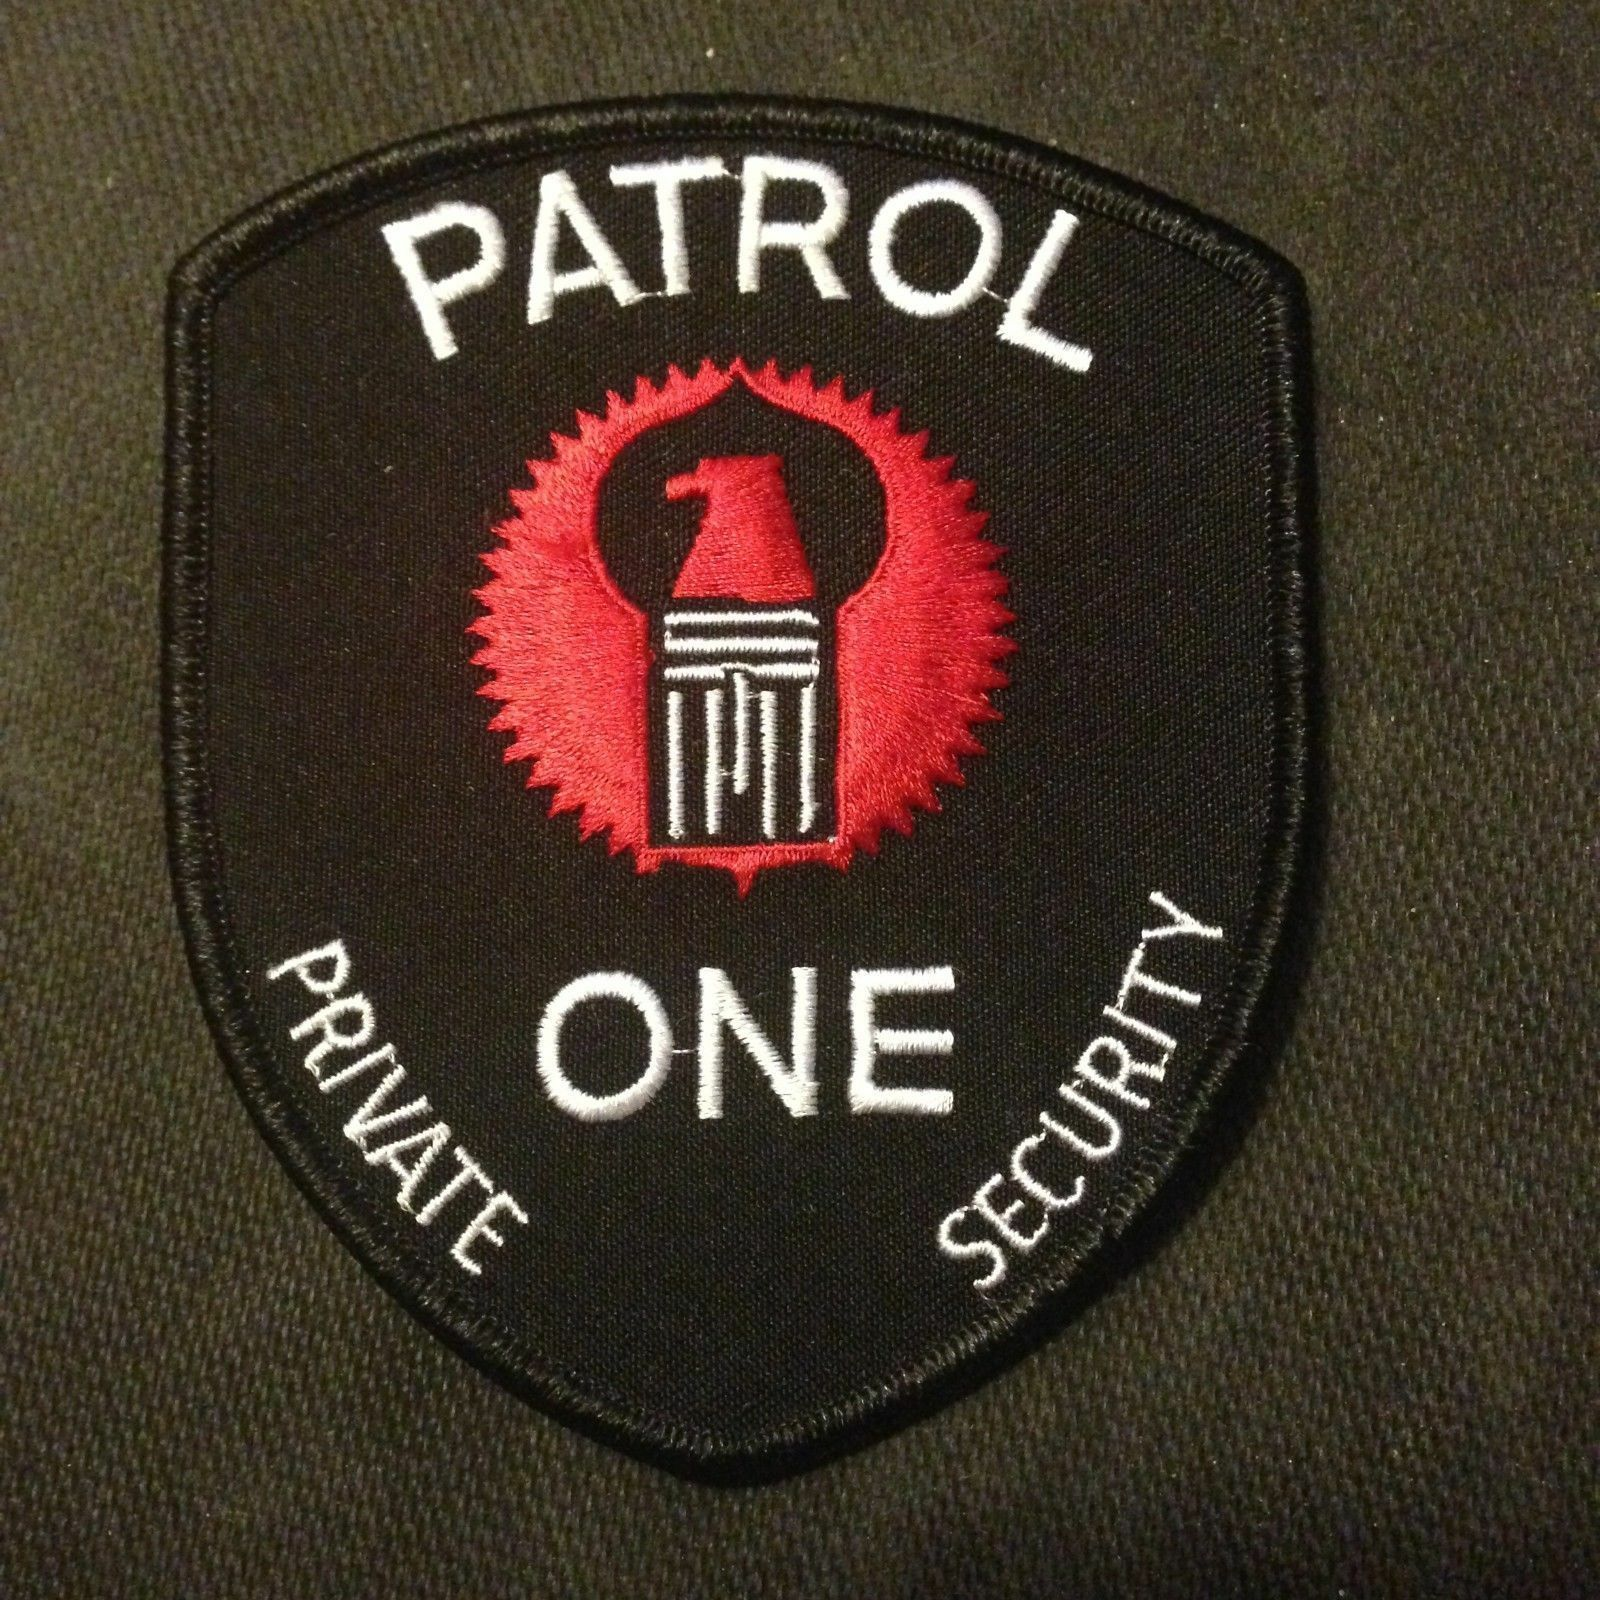 Patrol One Security Company Patch Security patches